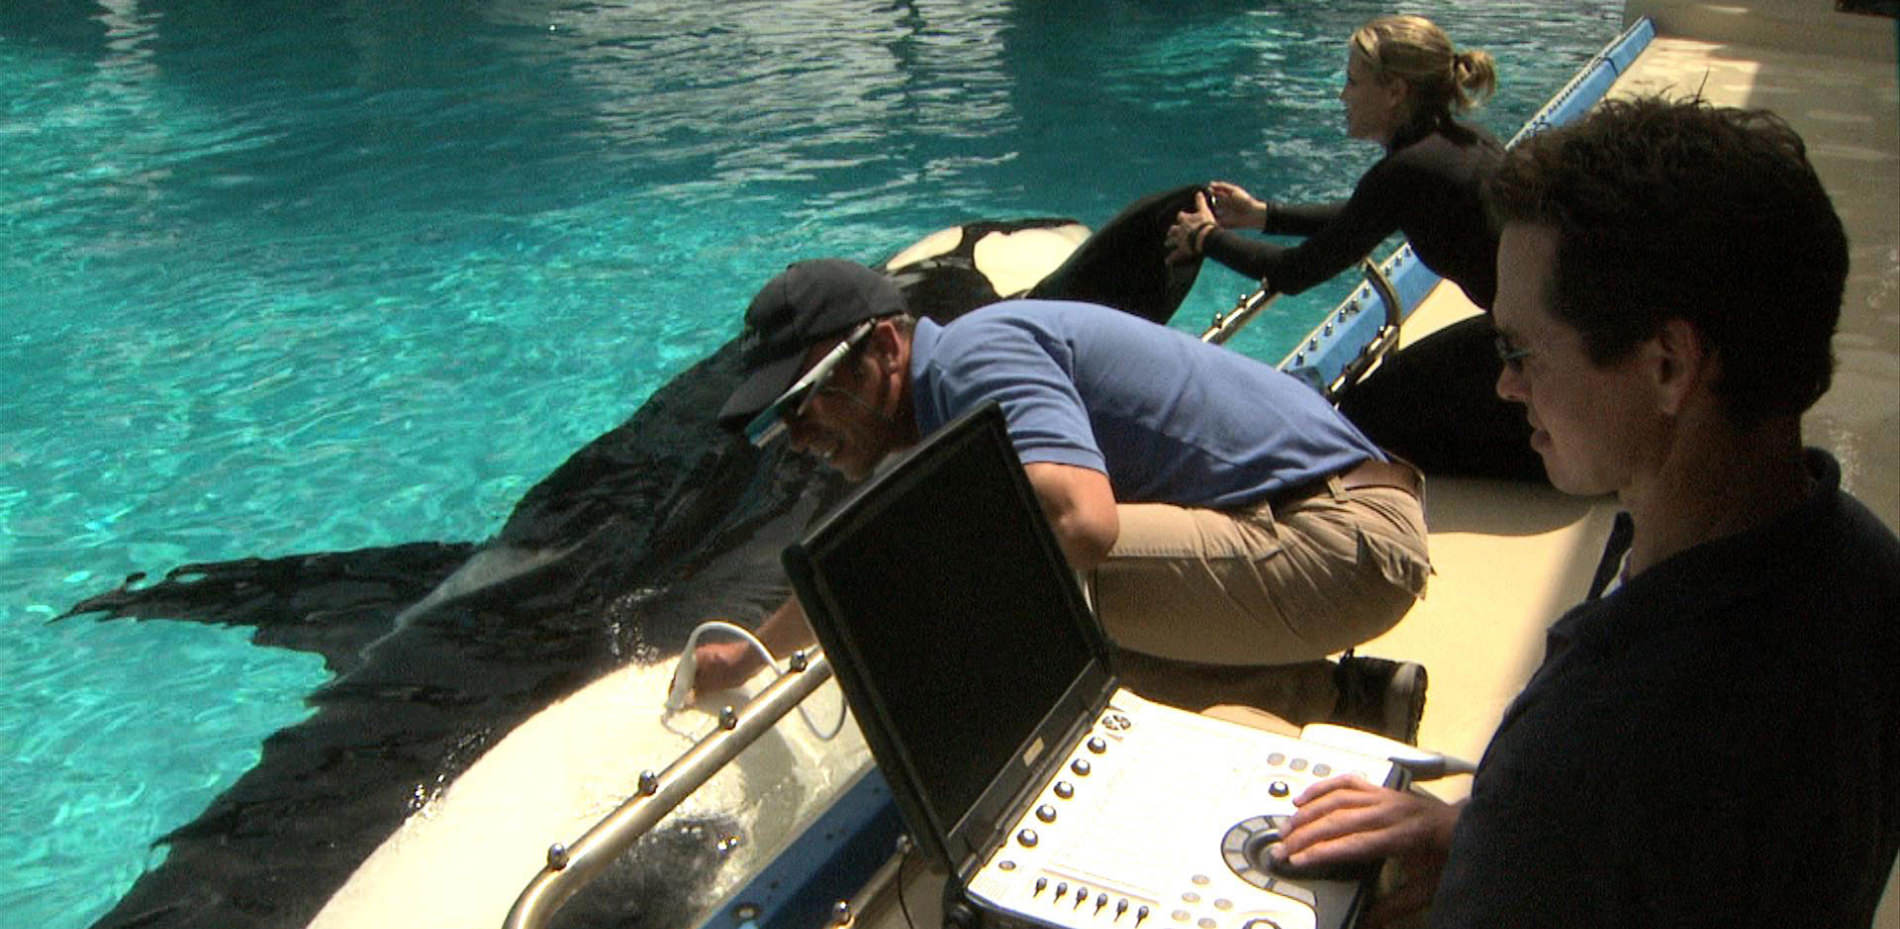 Veterinarian taking an ultrasound of a killer whale poolside